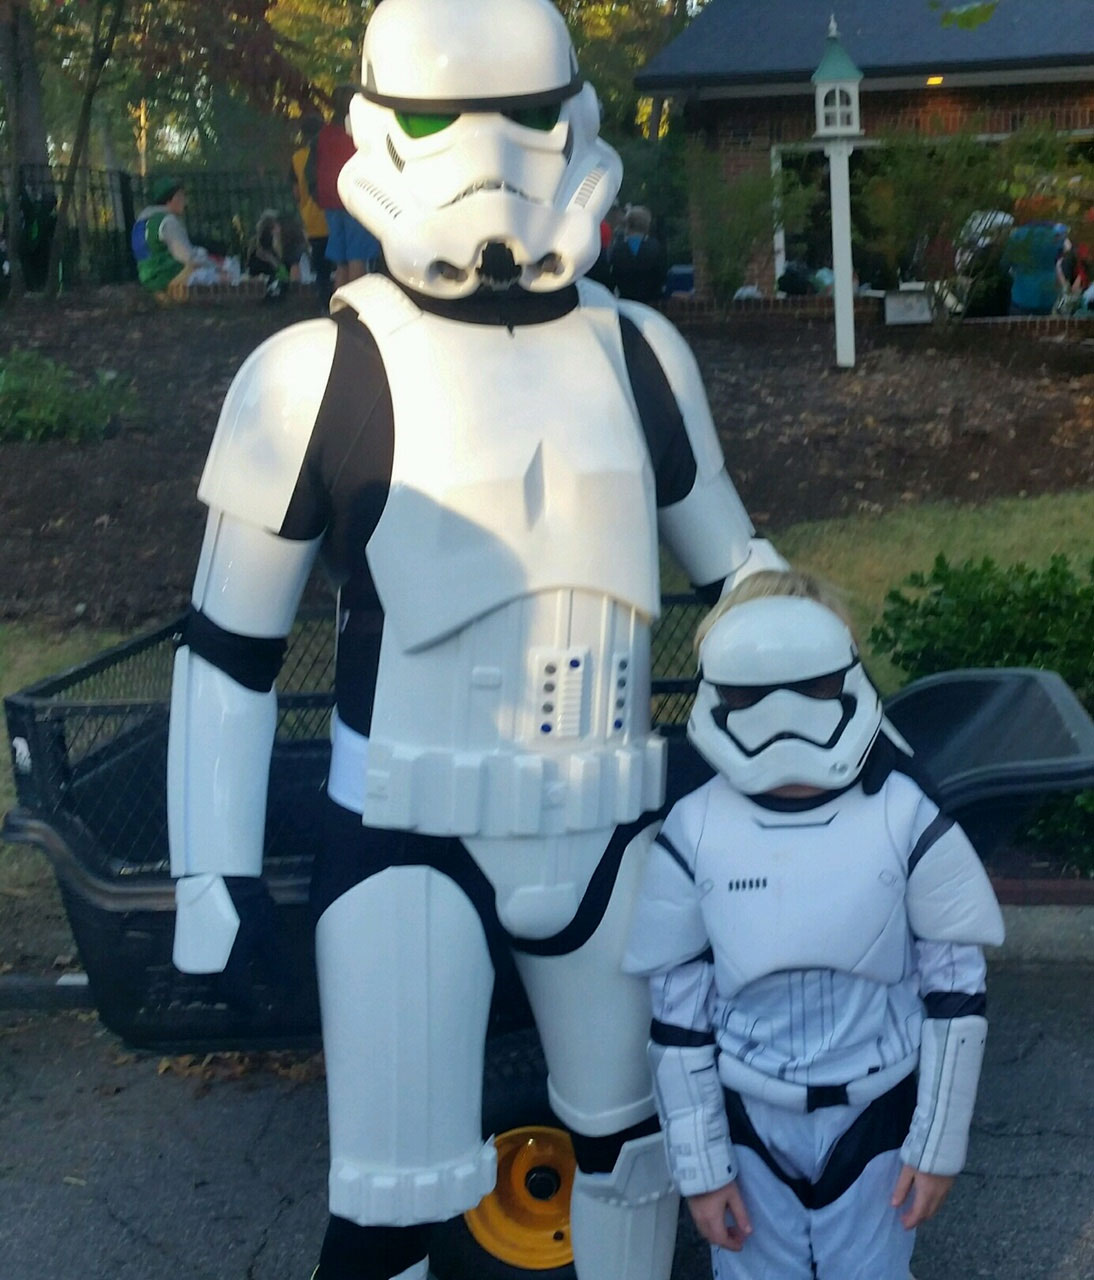 Jason Replica Stormtrooper ready to wear armour review shop costume